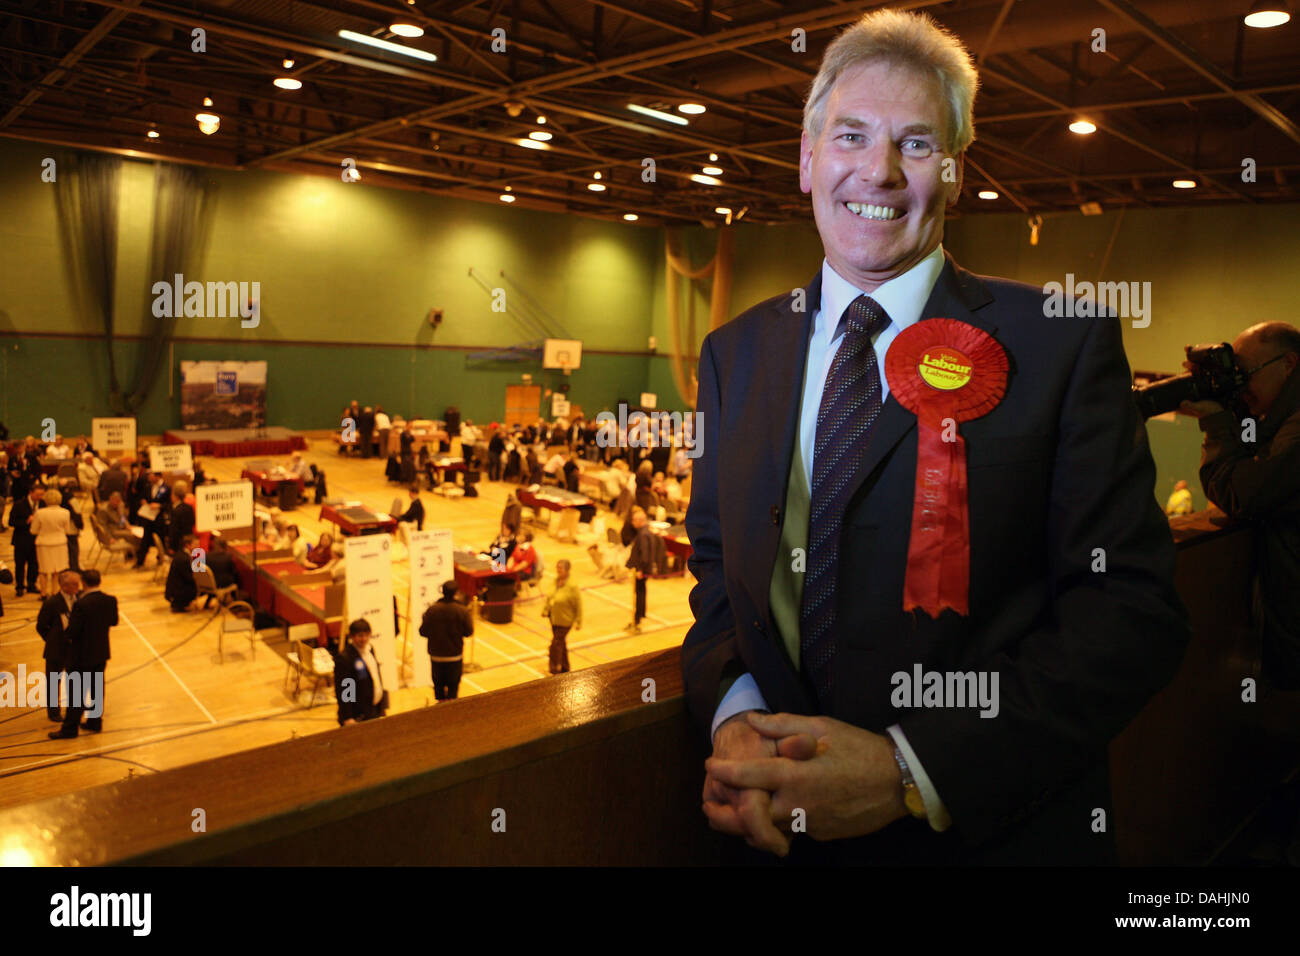 Local election night at Castle Leisure Centre, Bury. Labour MP for Bury North David Chaytor. Picture: Chris Bull - Stock Image